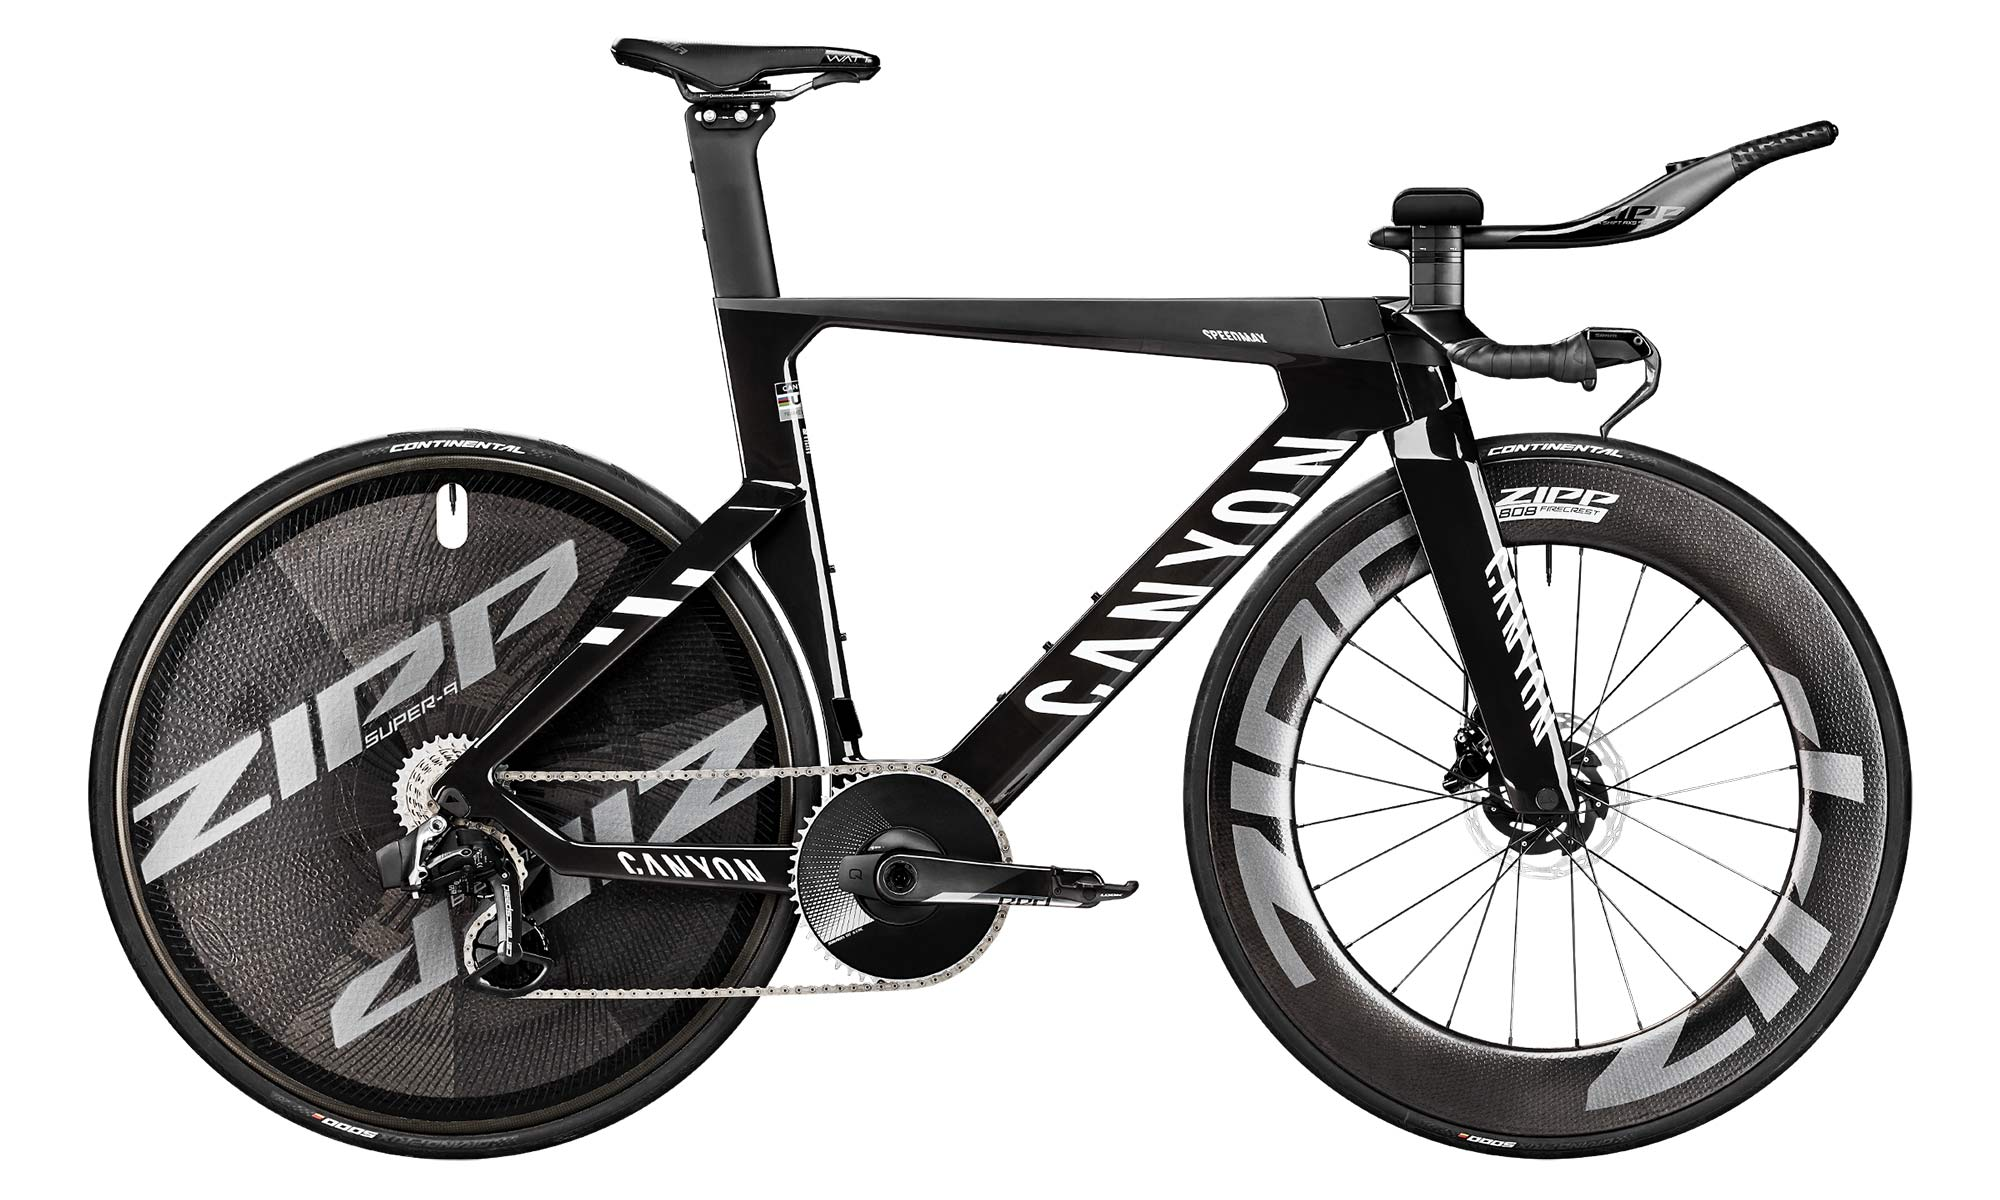 2021 Canyon Speedmax CFR TT Disc, carbon race-ready UCI-approved time trial bike,complete